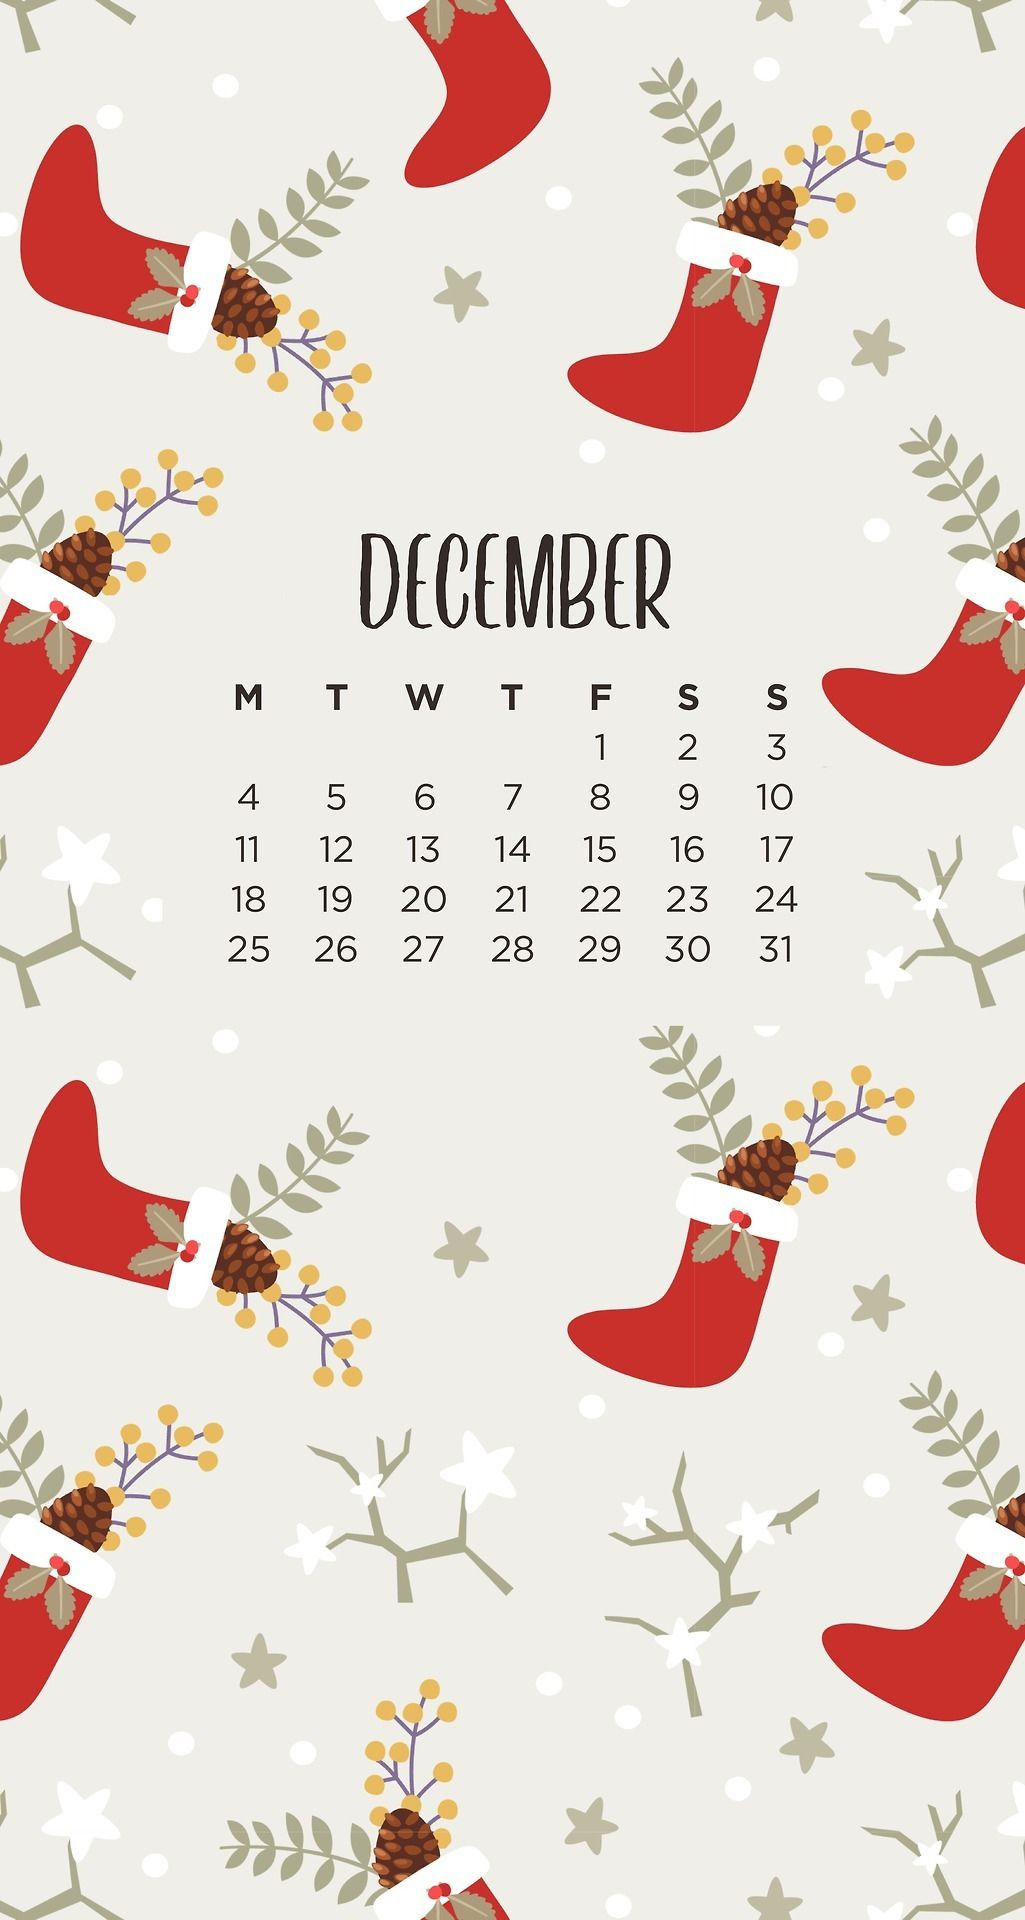 December Christmas Stockings Phone Wallpapers by